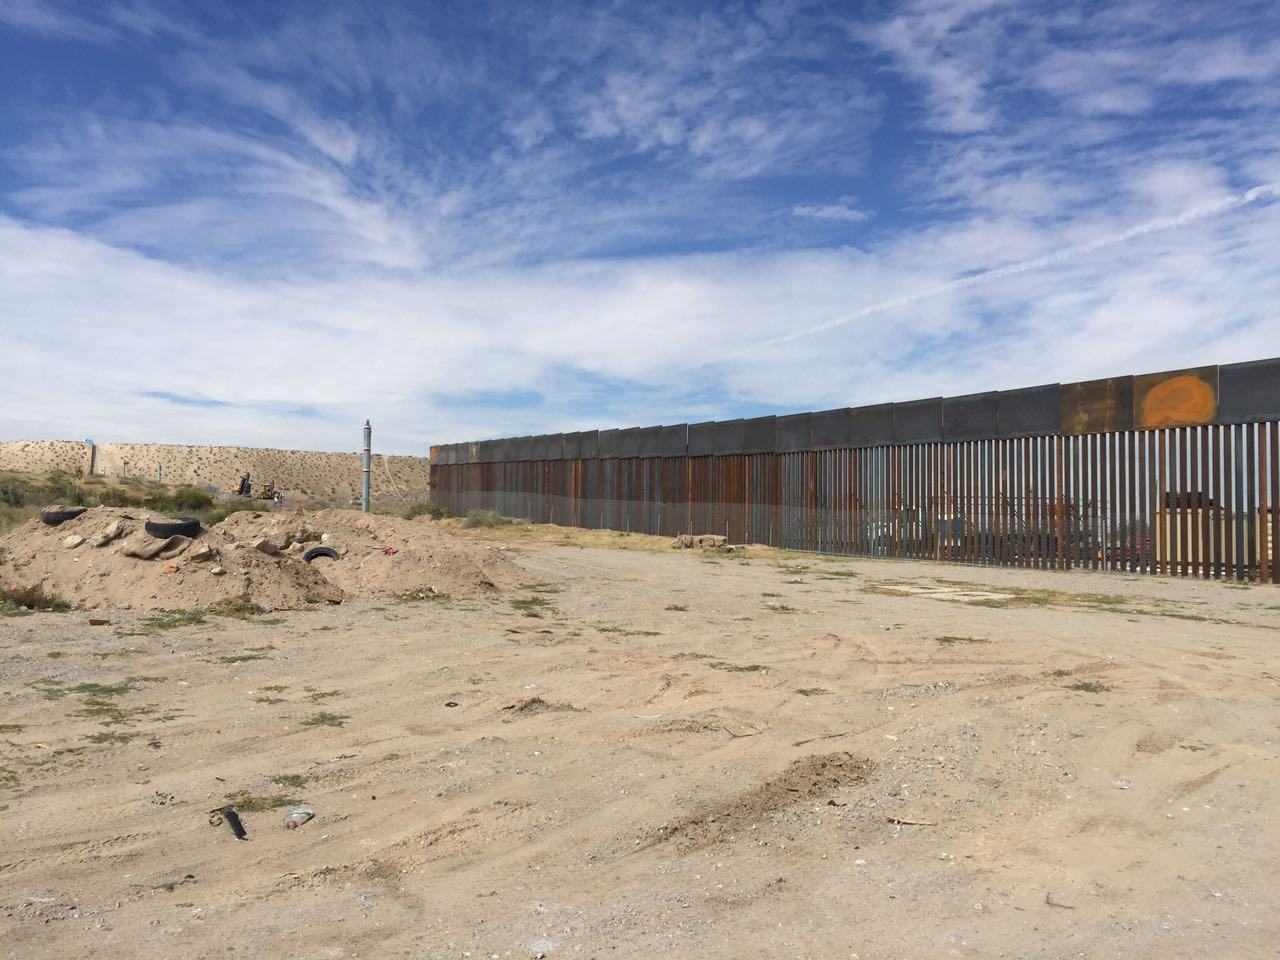 Picture of the wall construction